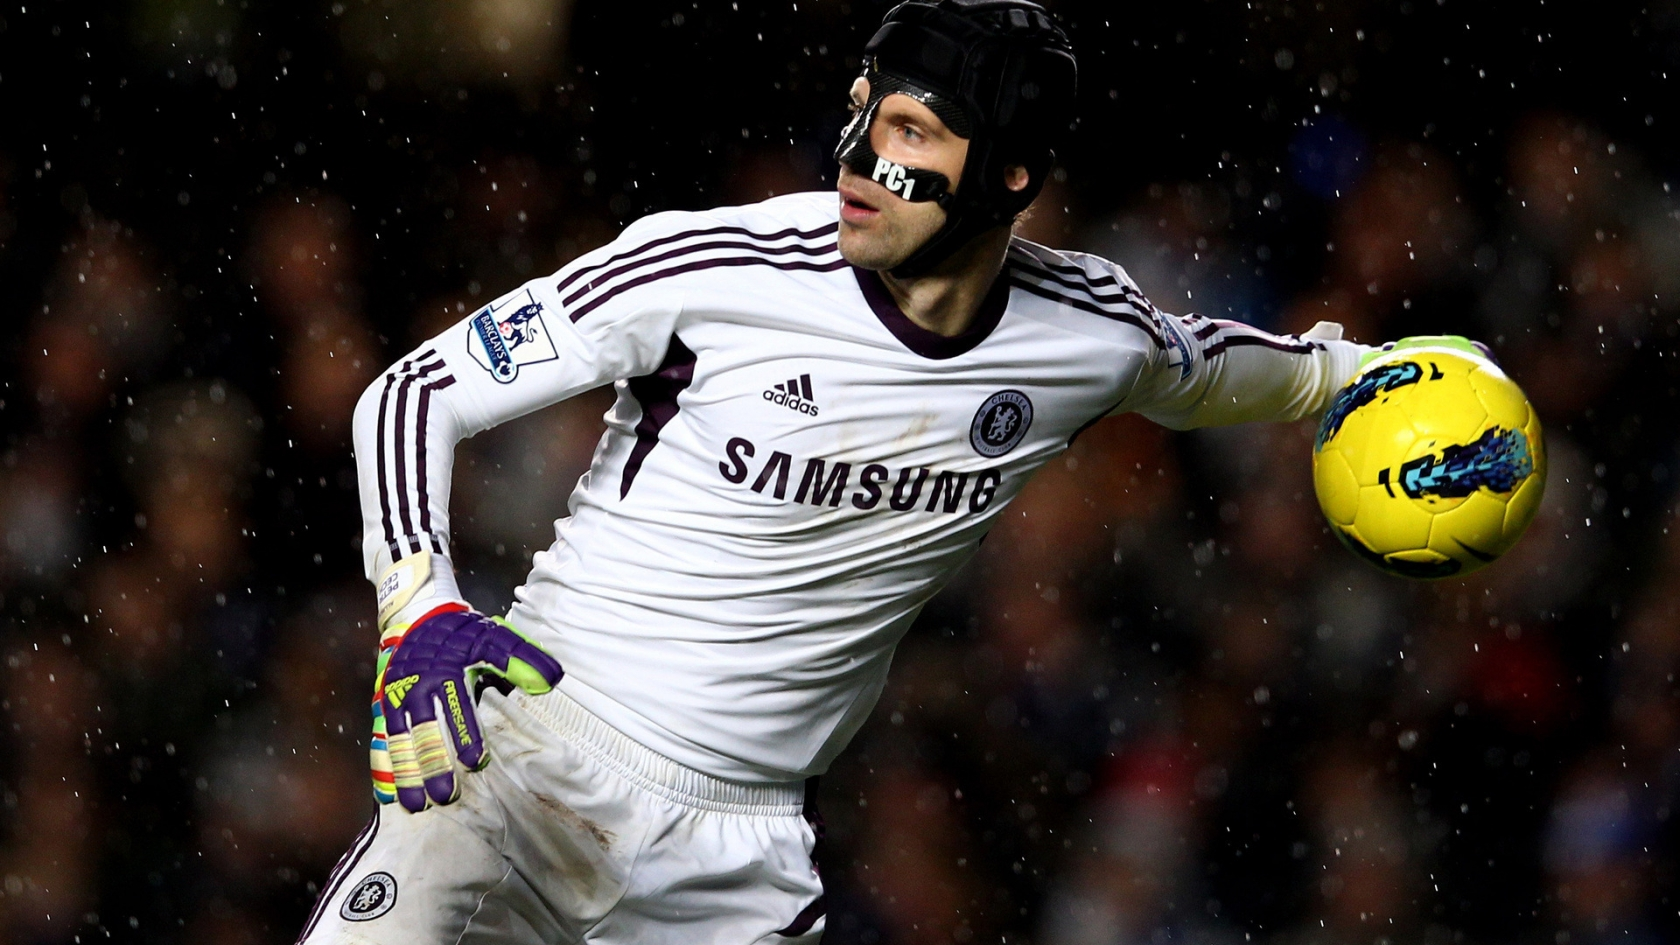 Petr Cech for 1680 x 945 HDTV resolution